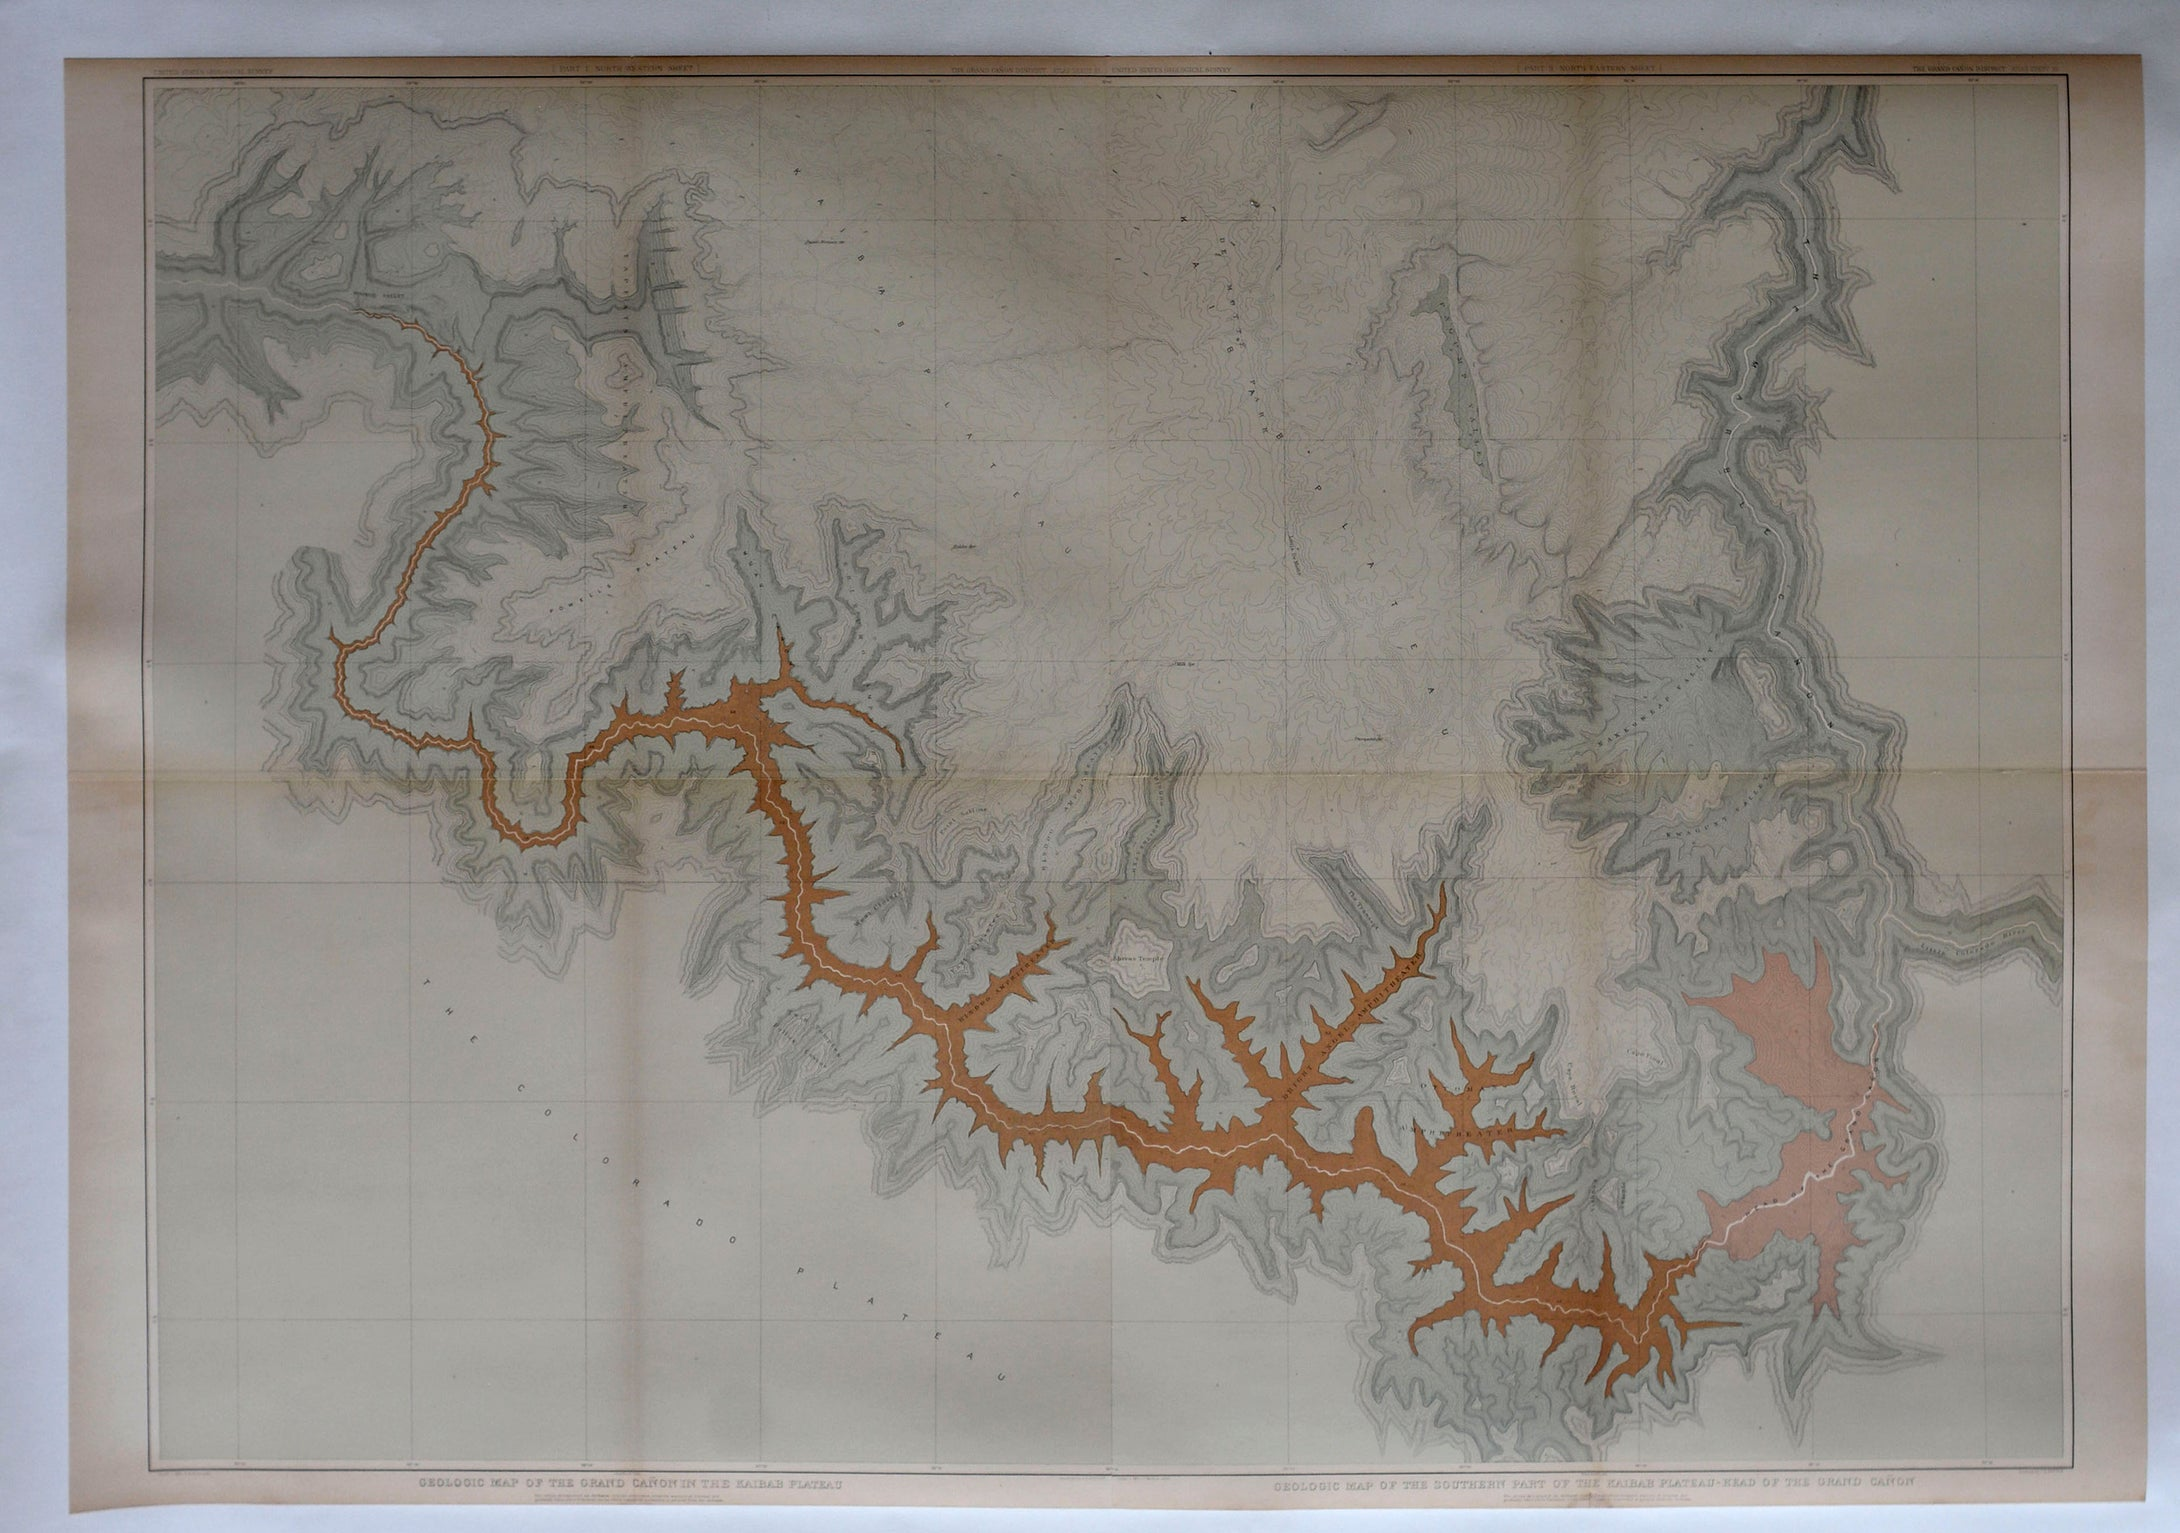 Map of the Grand Canyon, 1882